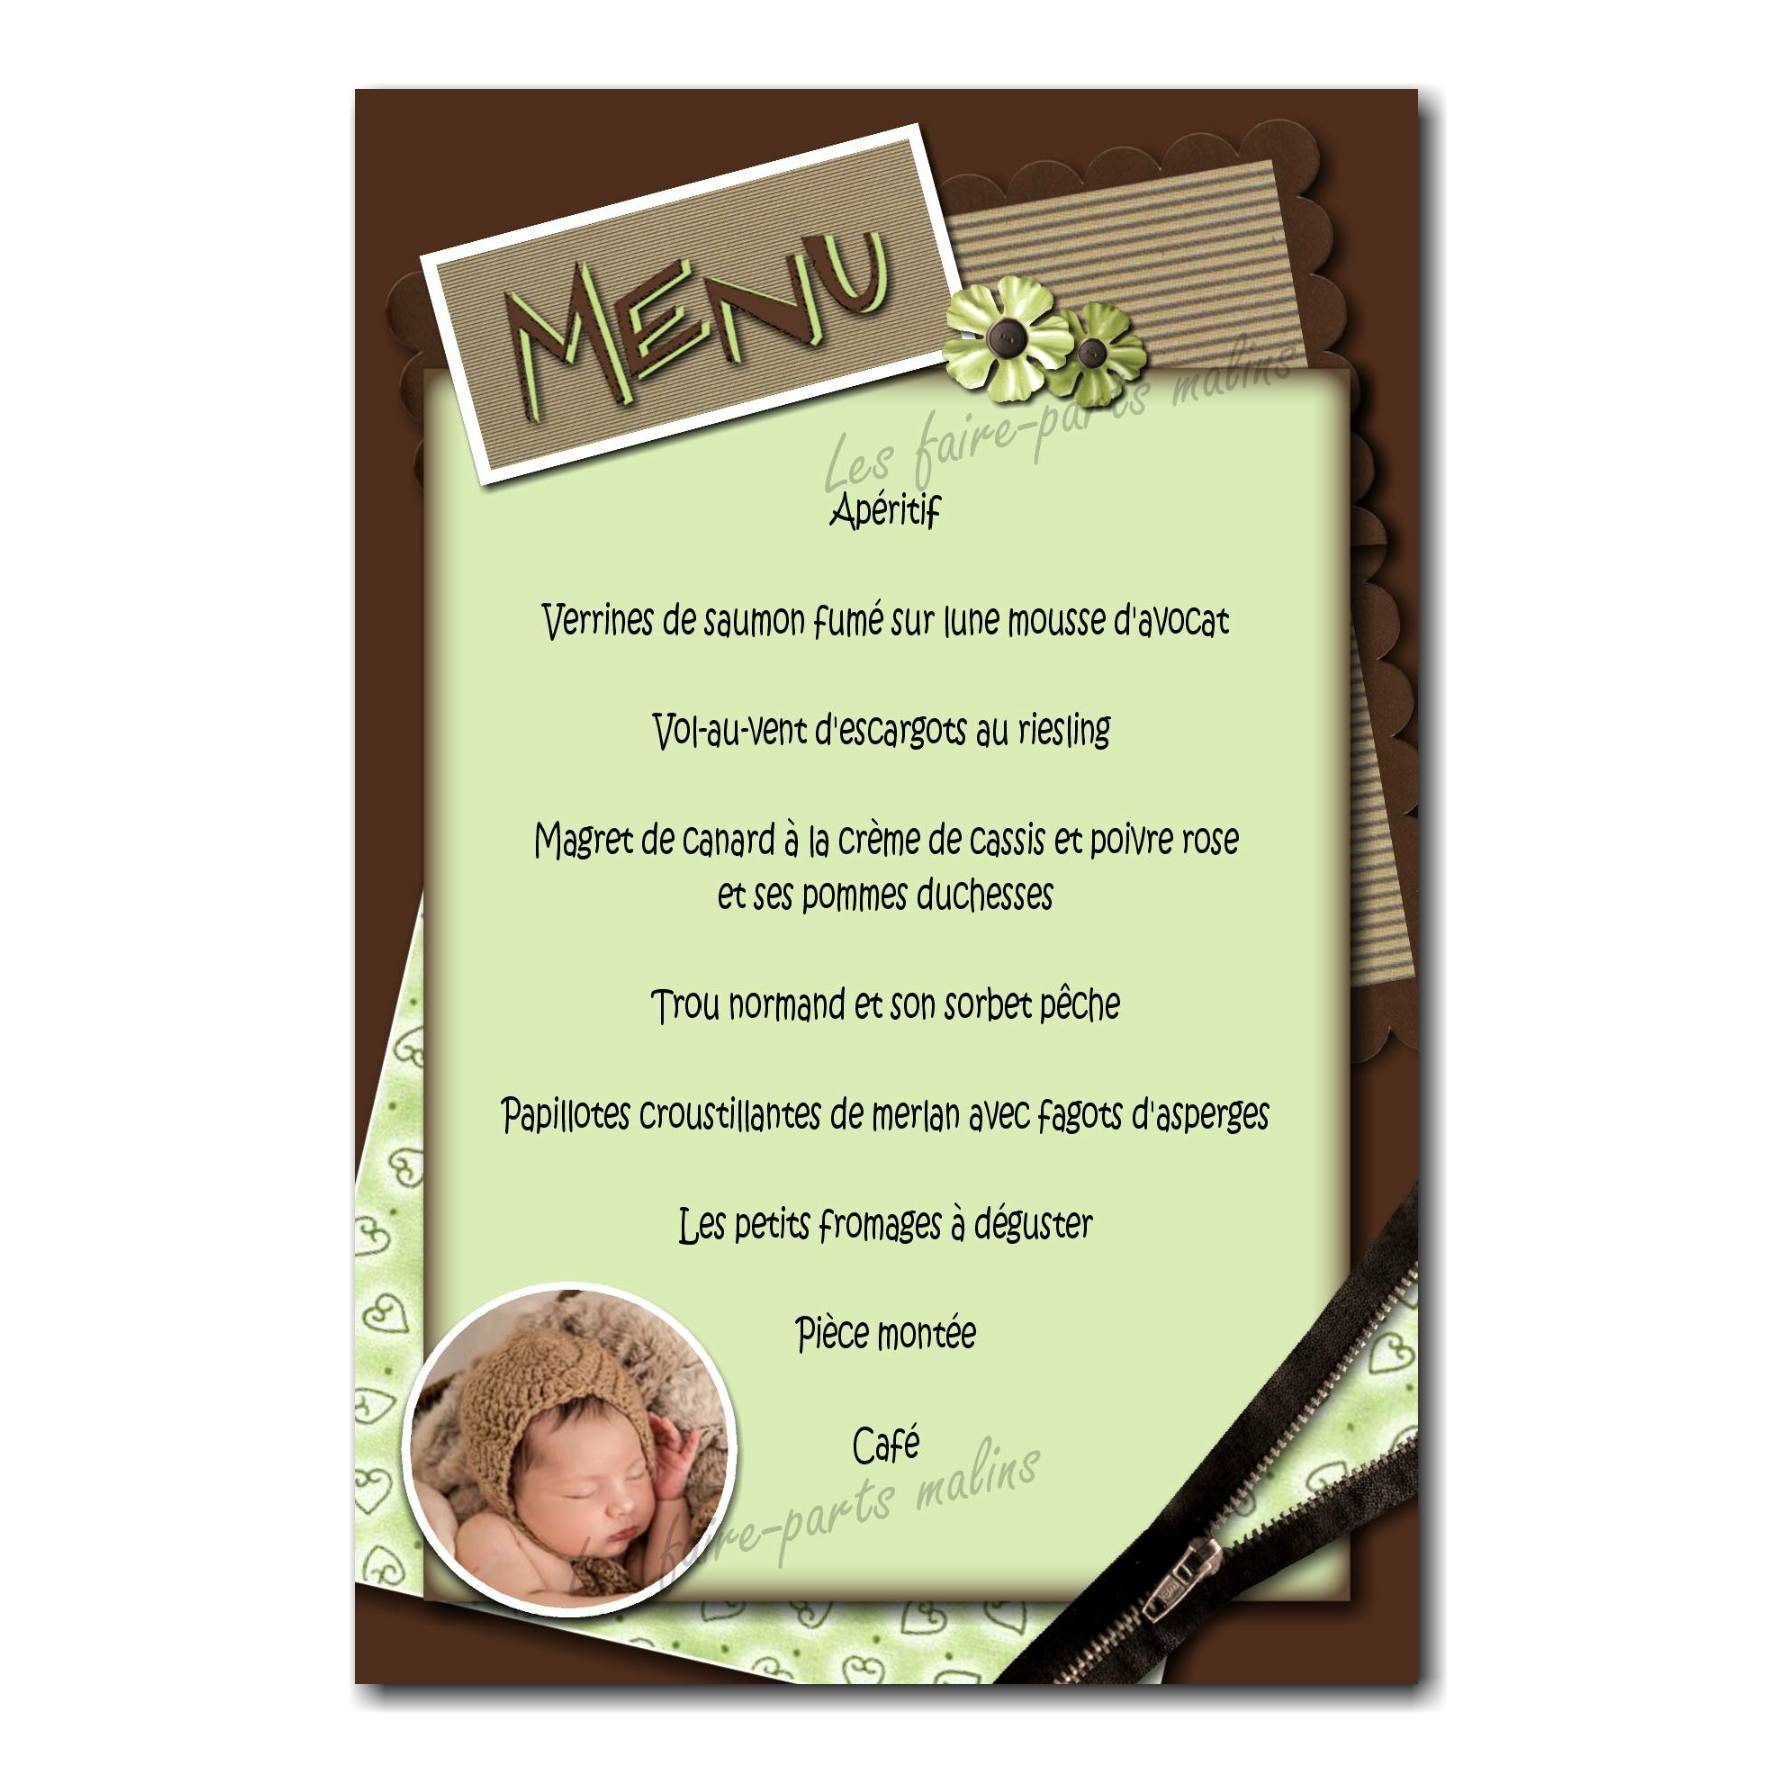 23 mixte menu photo